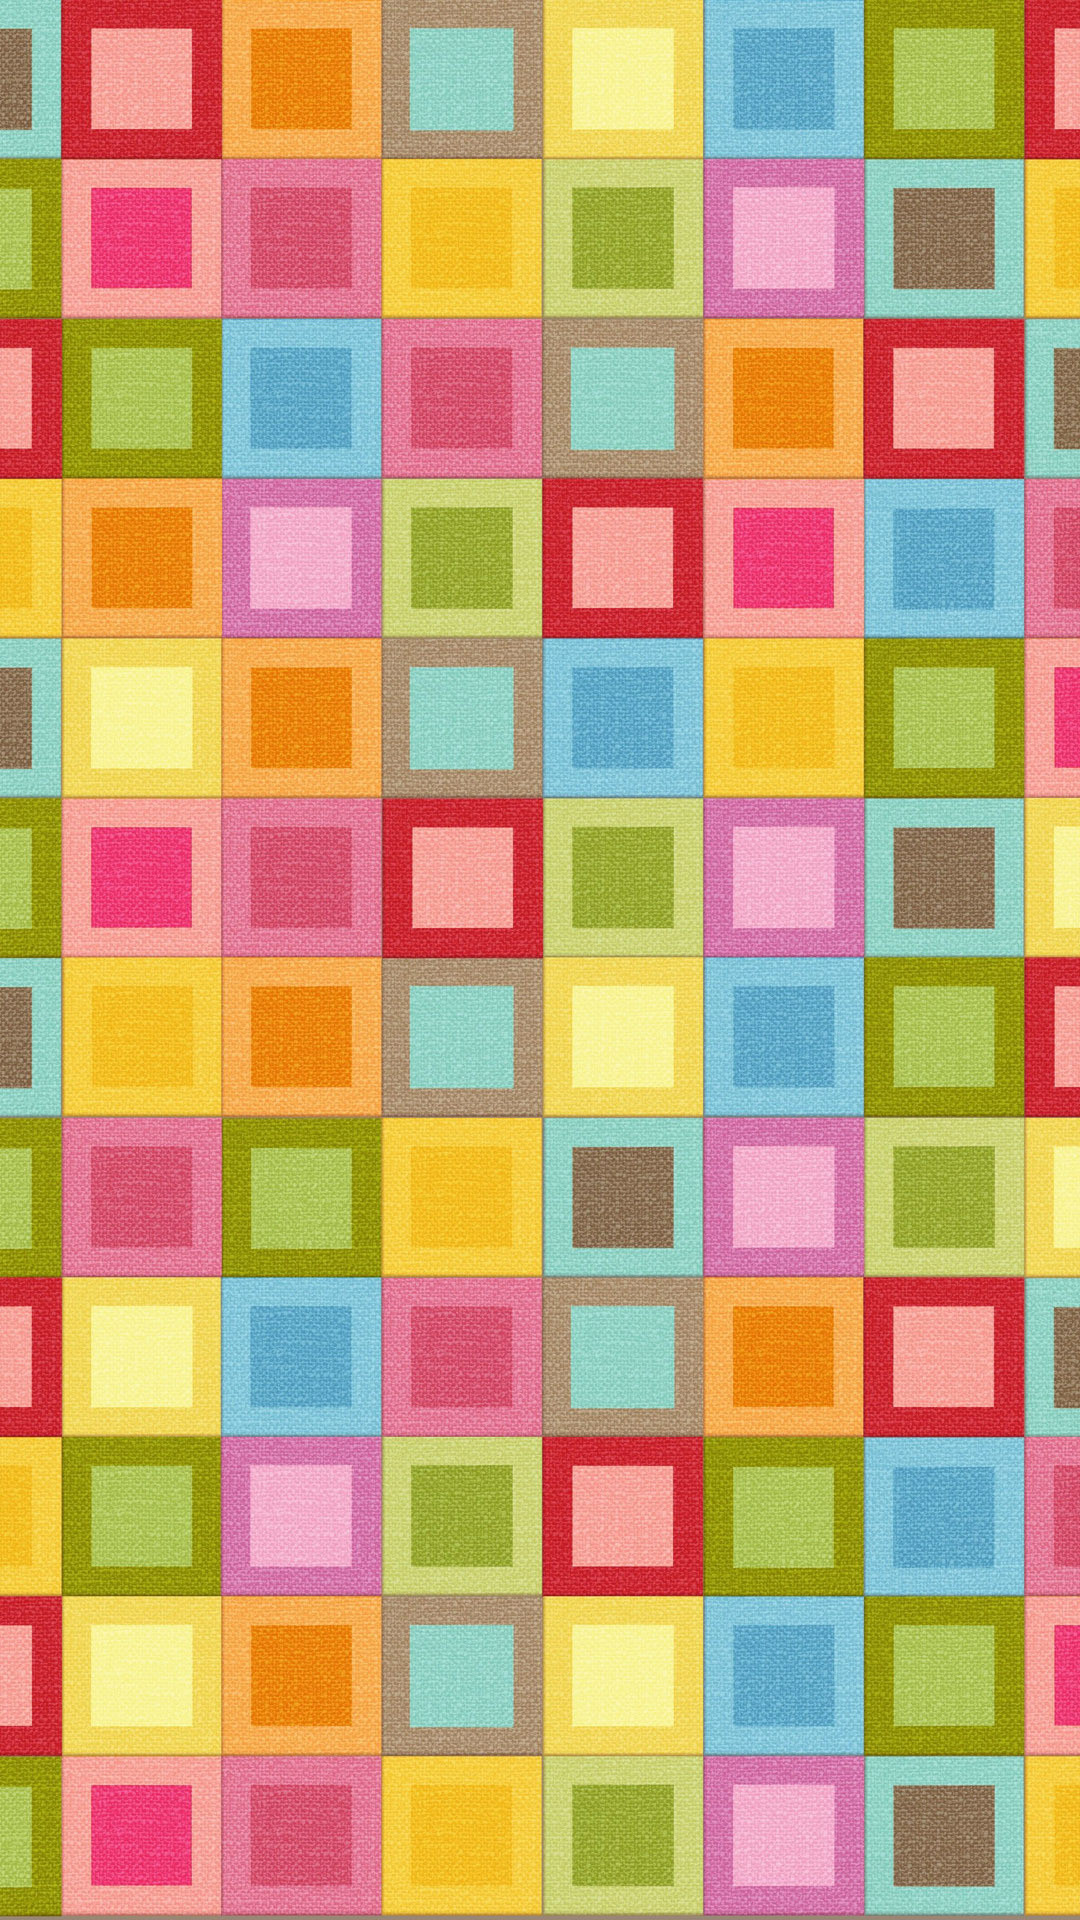 Free Apple iPhone Pattern Home Screen Wallpapers